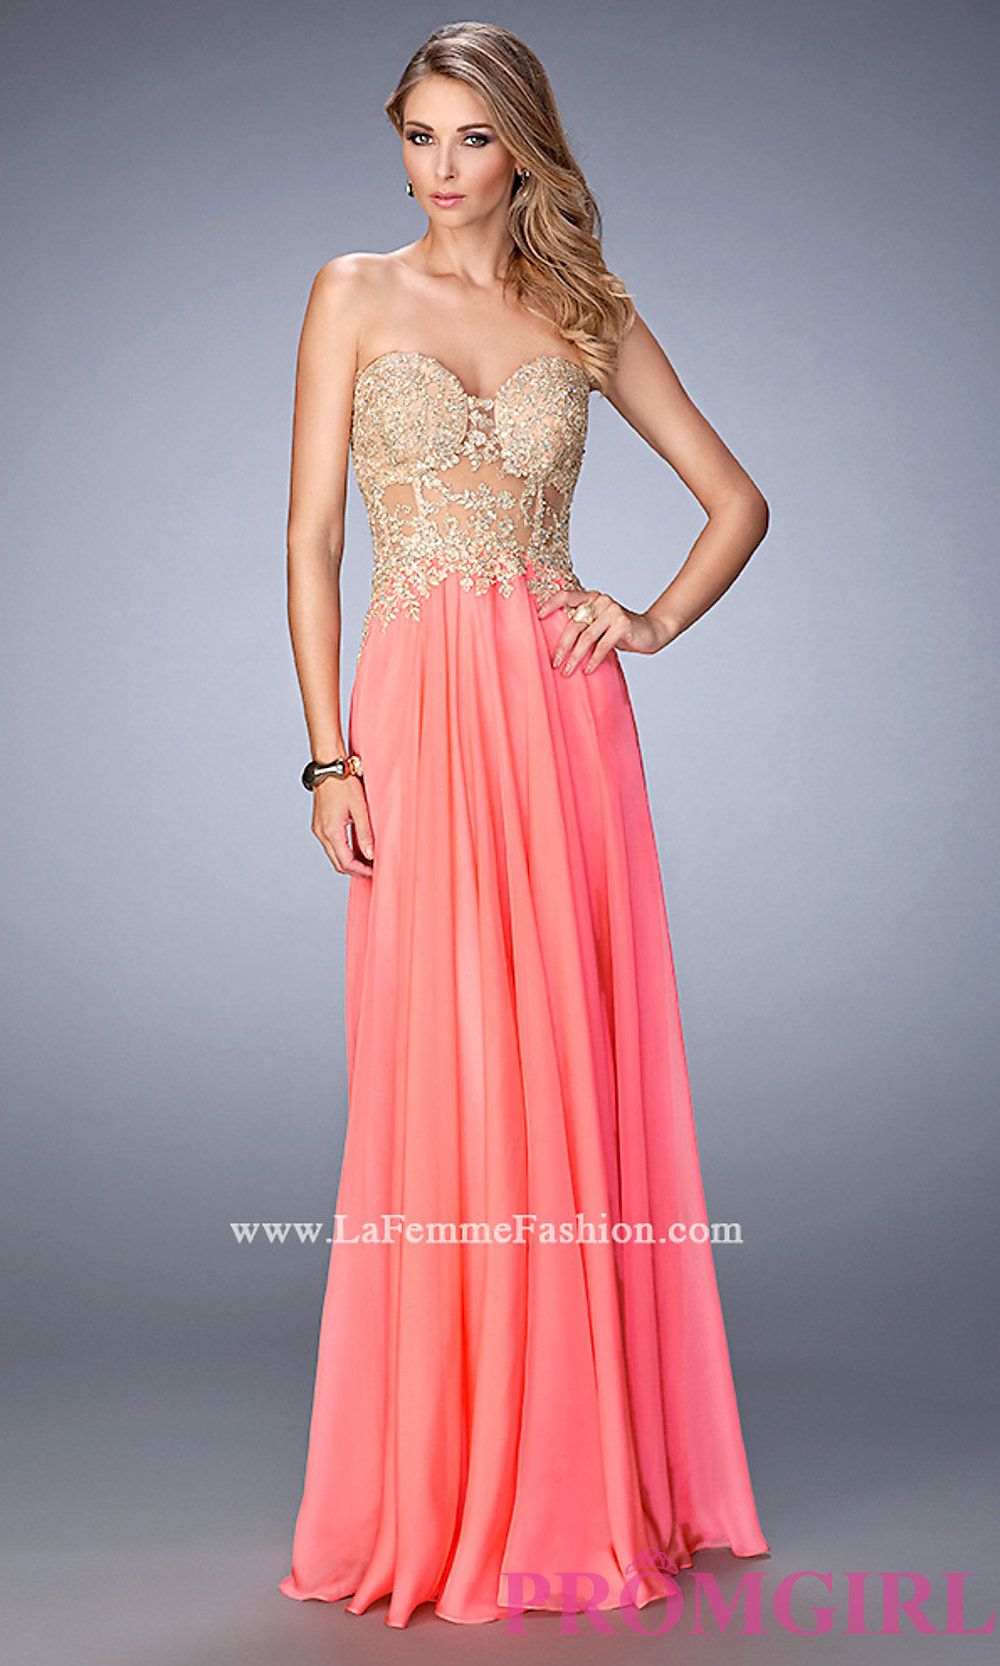 Long strapless dress with embroidered top style lf dresses